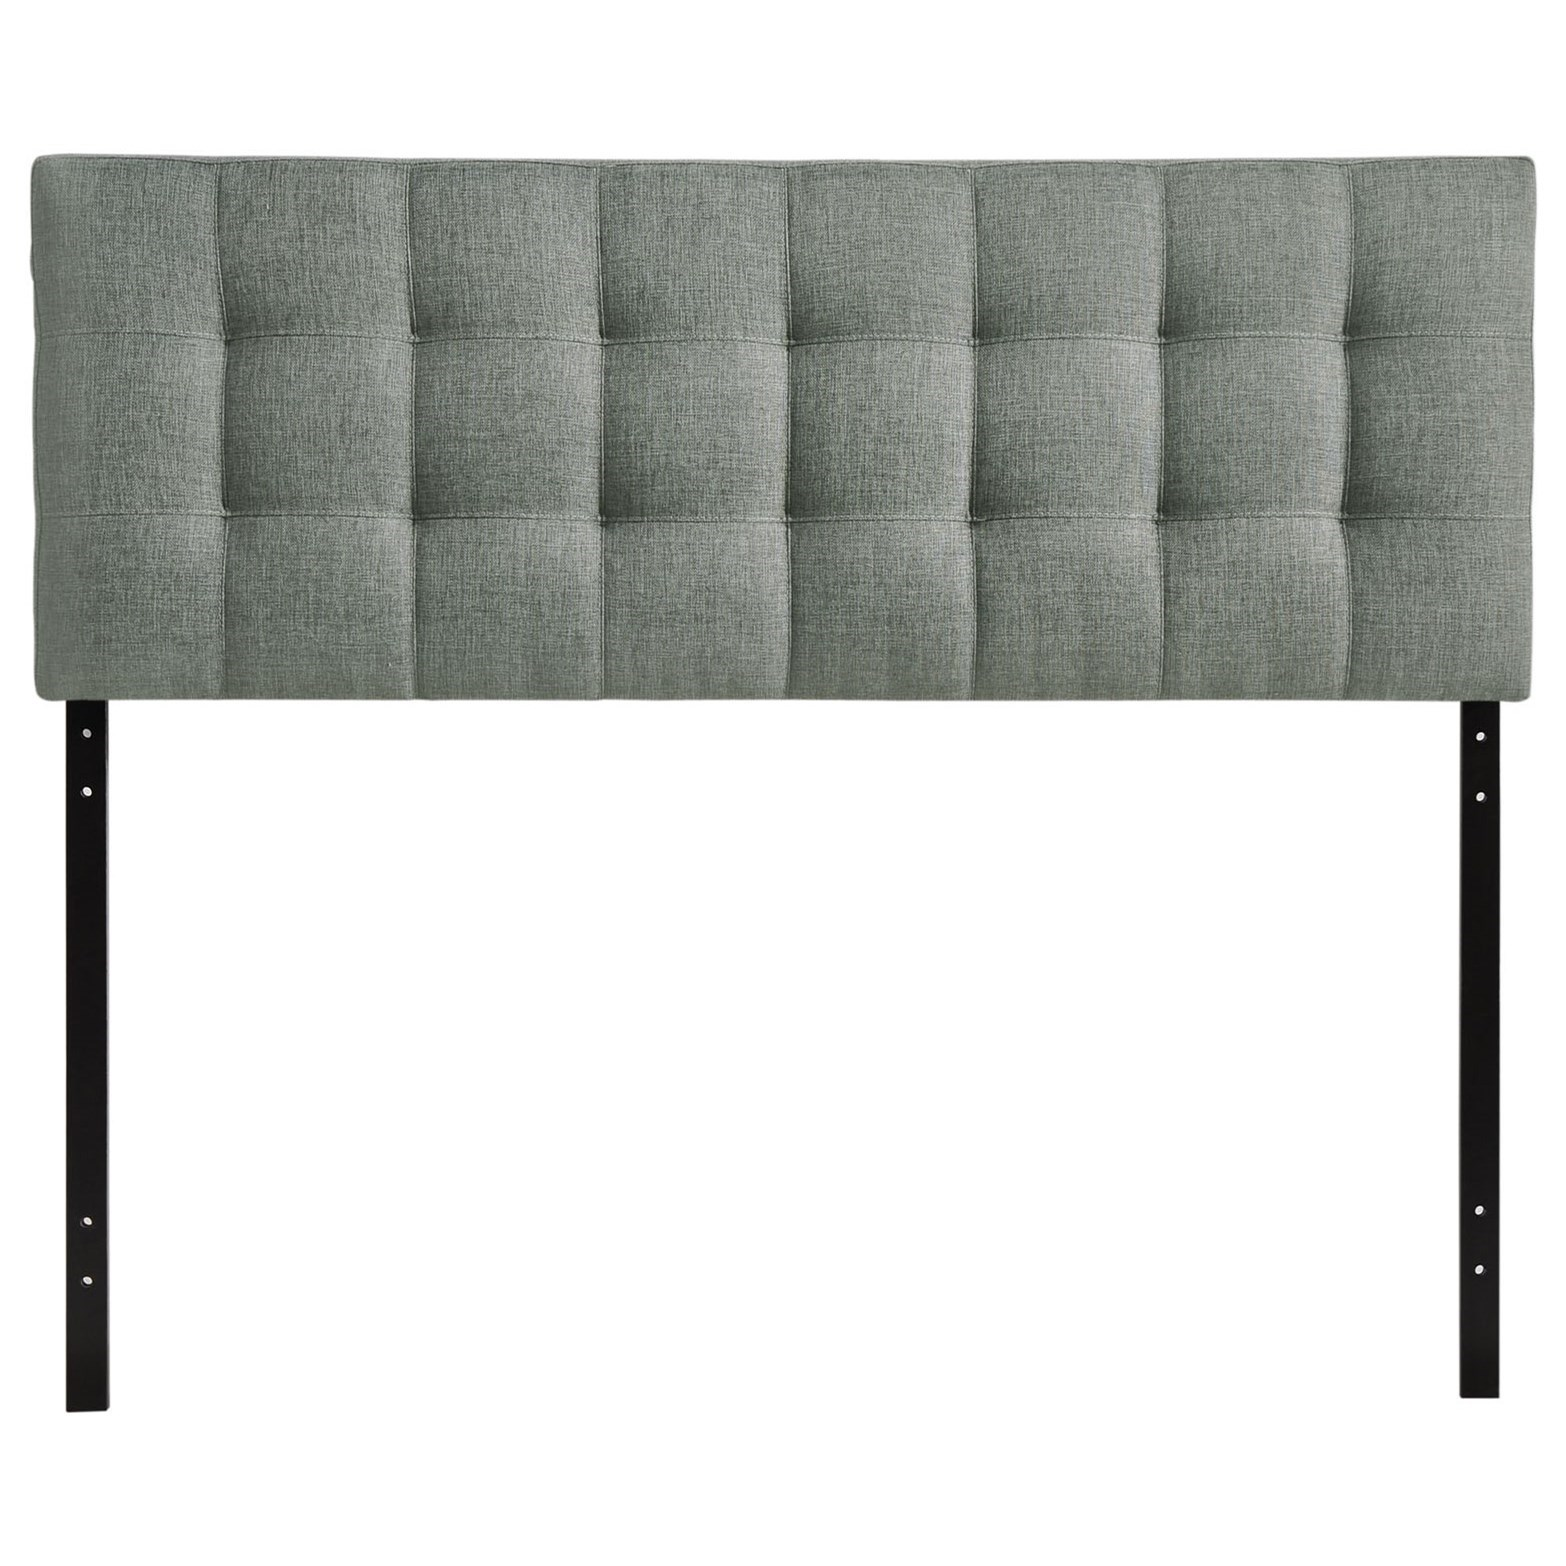 Lily Queen Upholstered Headboard by Modway at Value City Furniture